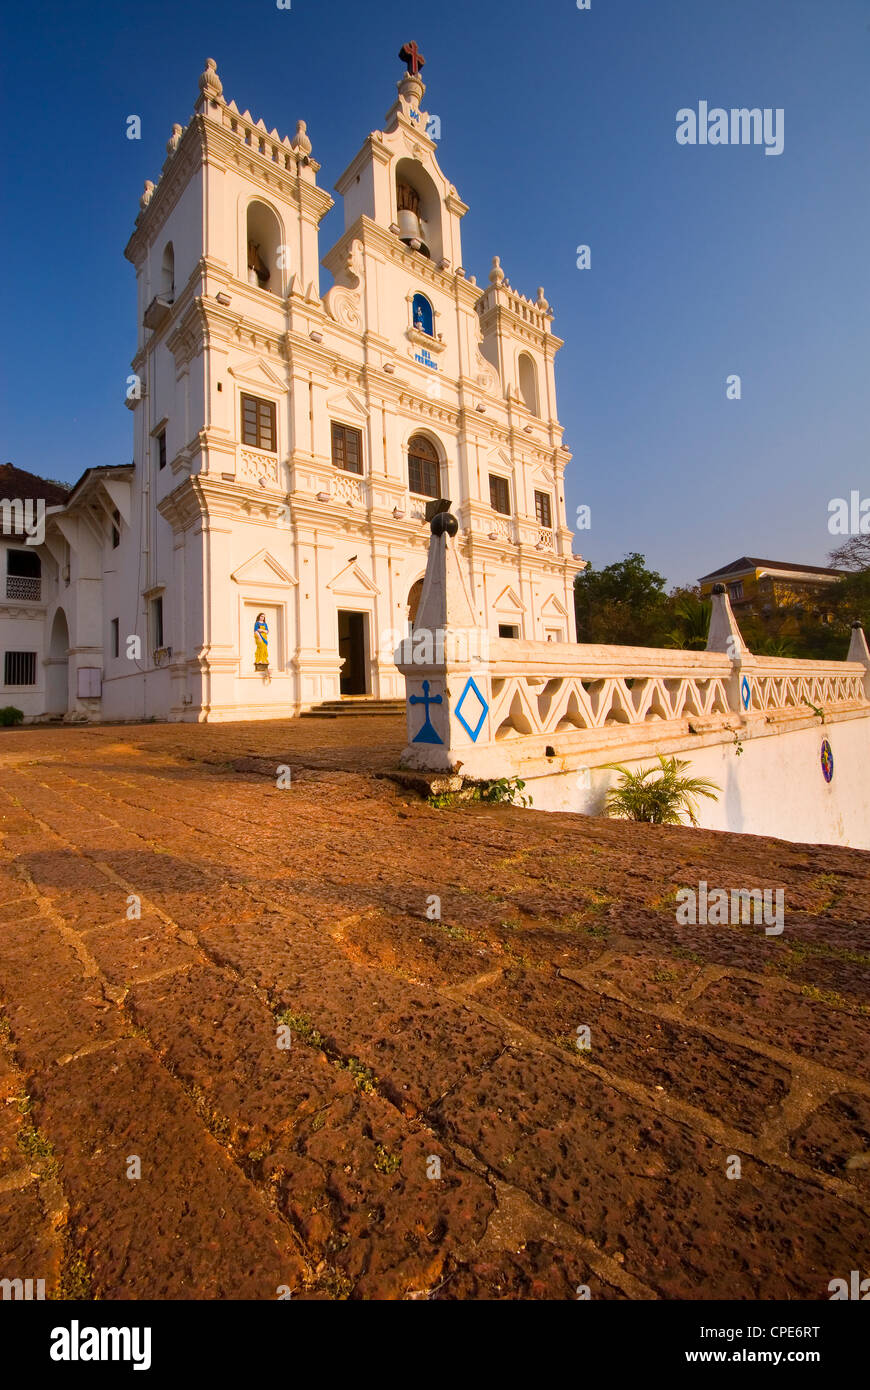 Church of Our Lady of the Immaculate Conception, UNESCO World Heritage Site, Panjim, Goa, India, Asia - Stock Image